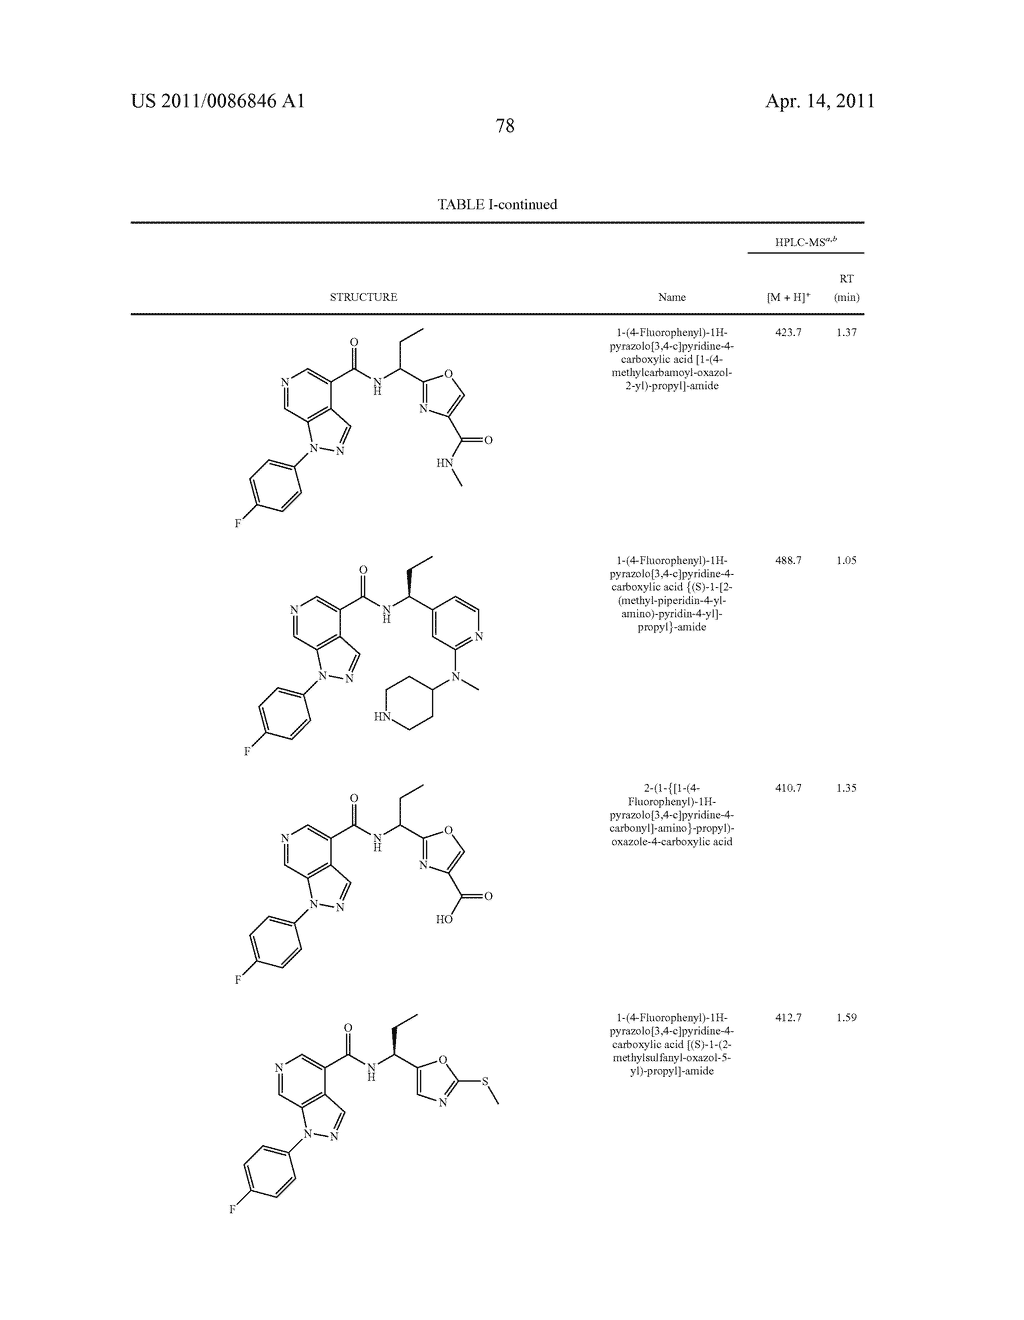 Azaindazole Compounds As CCR1 Receptor Antagonists - diagram, schematic, and image 79